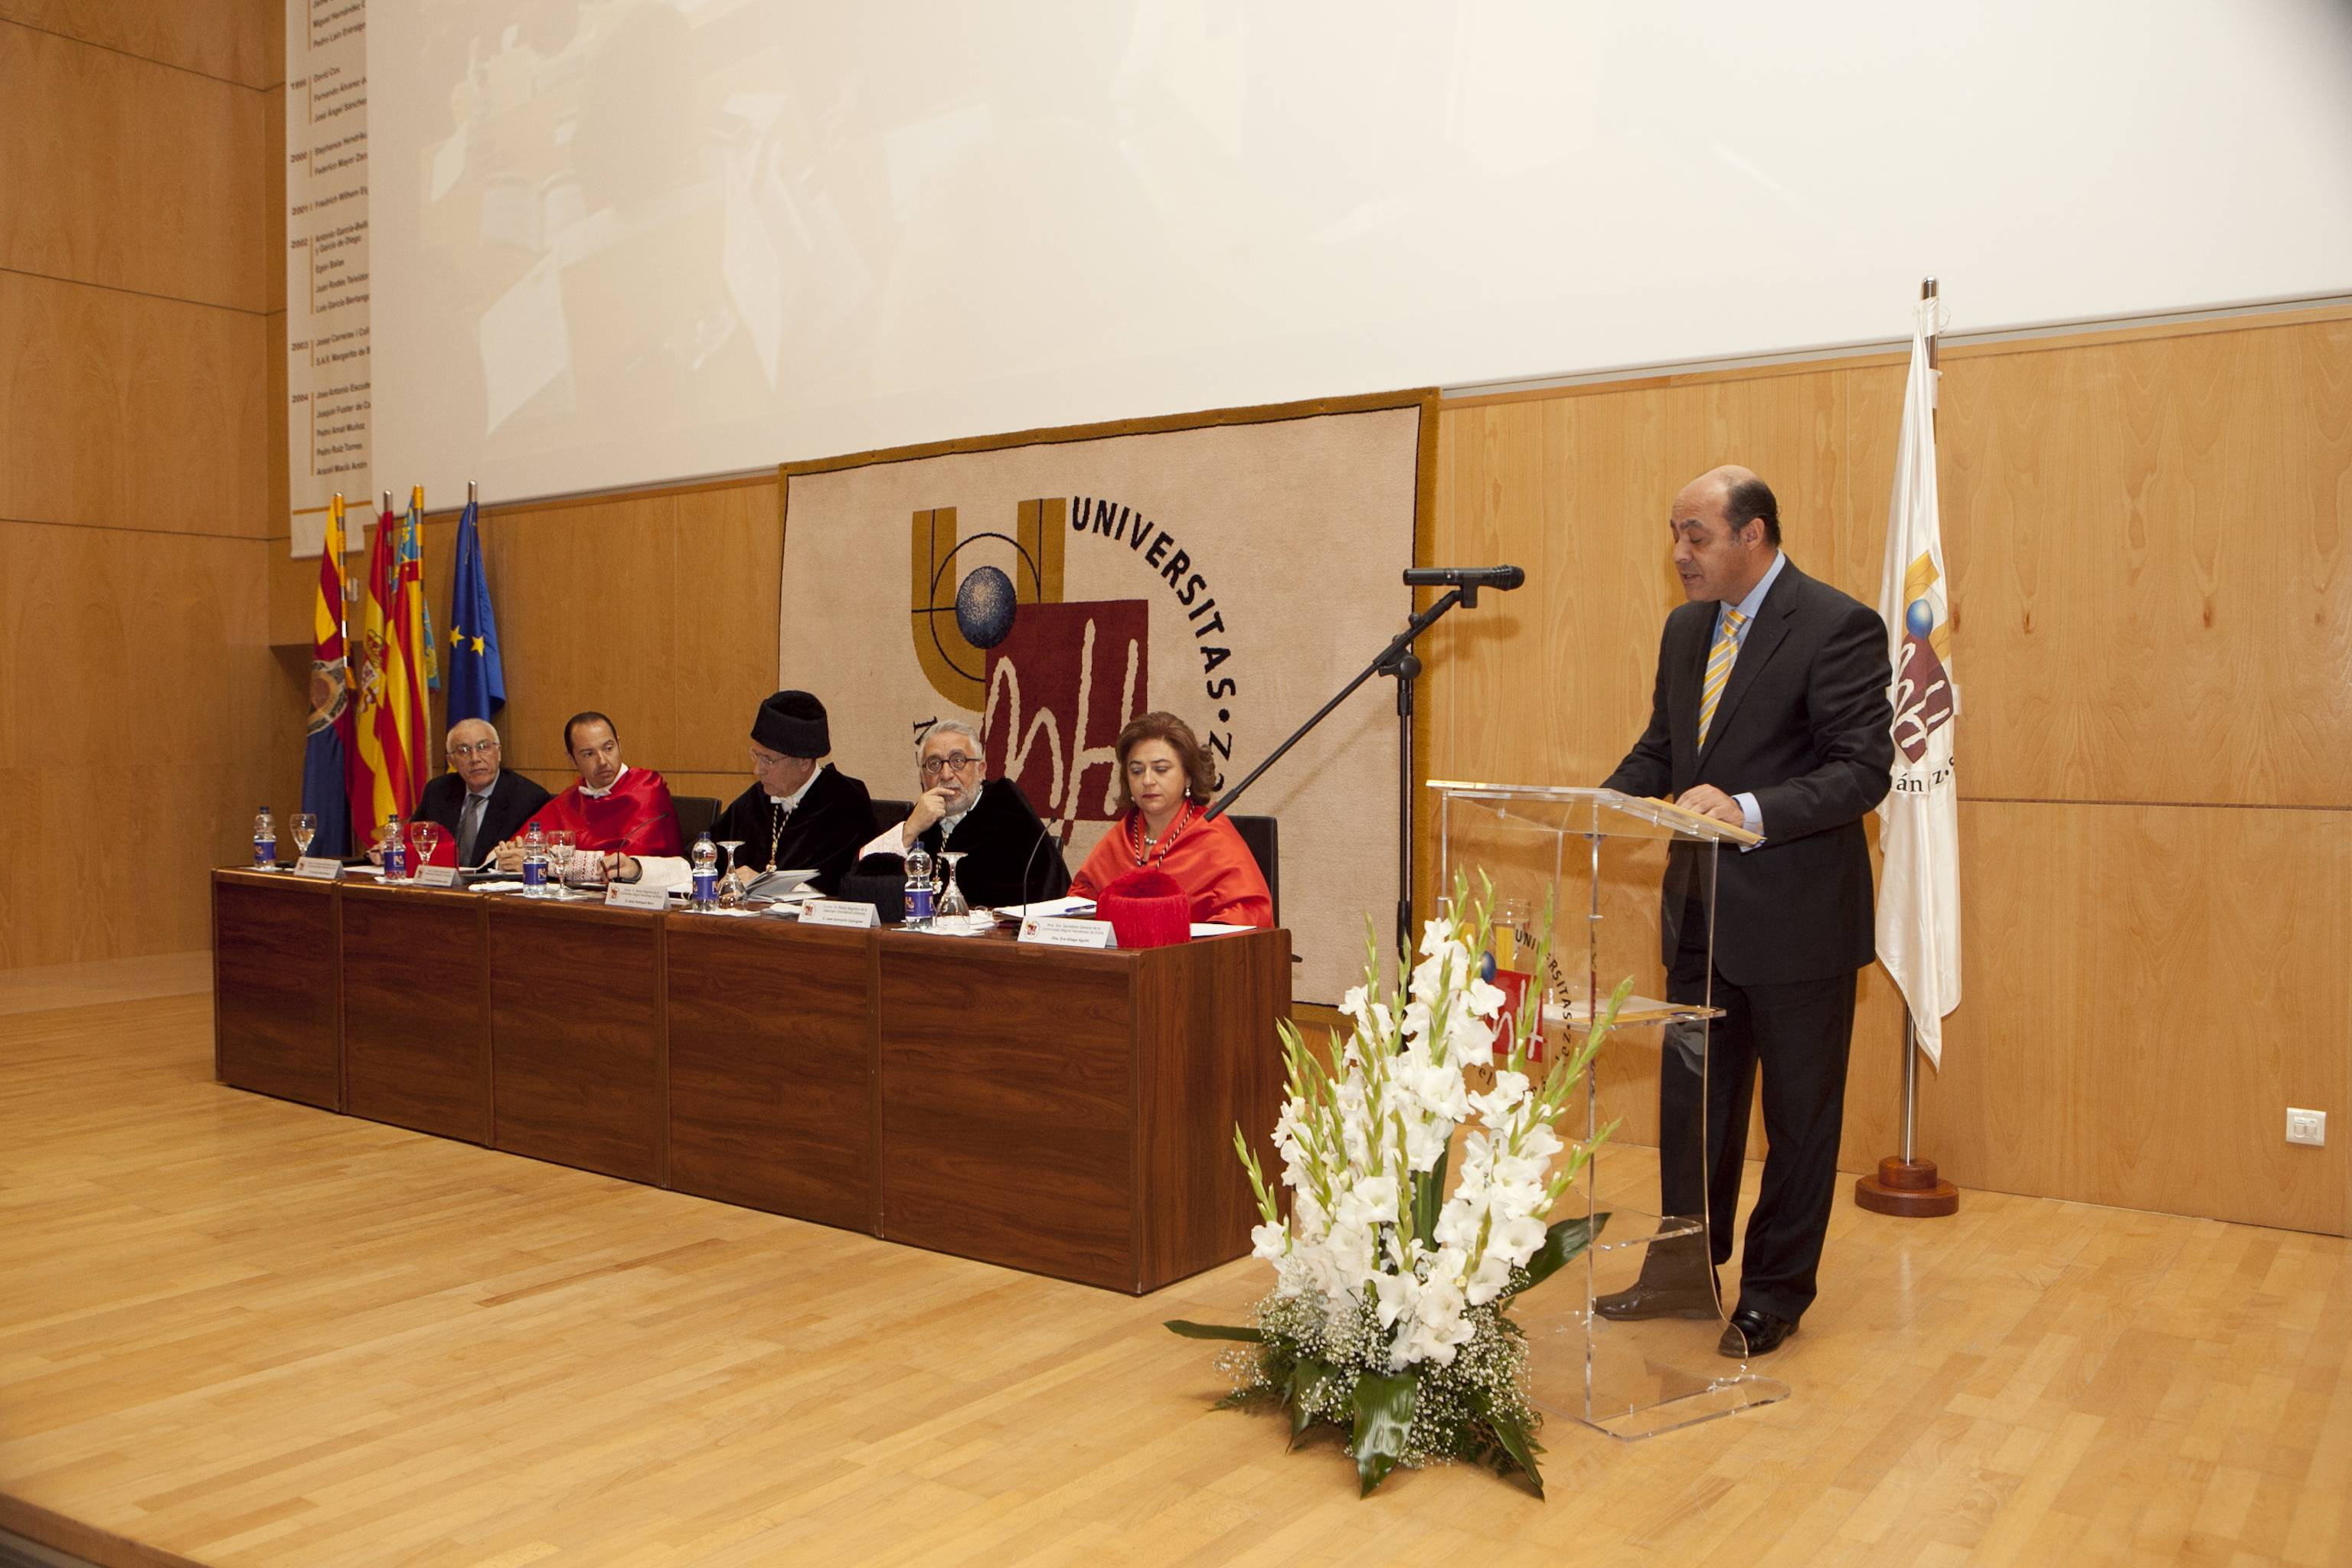 doctor-honoris-causa-luis-gamir_mg_1020.jpg